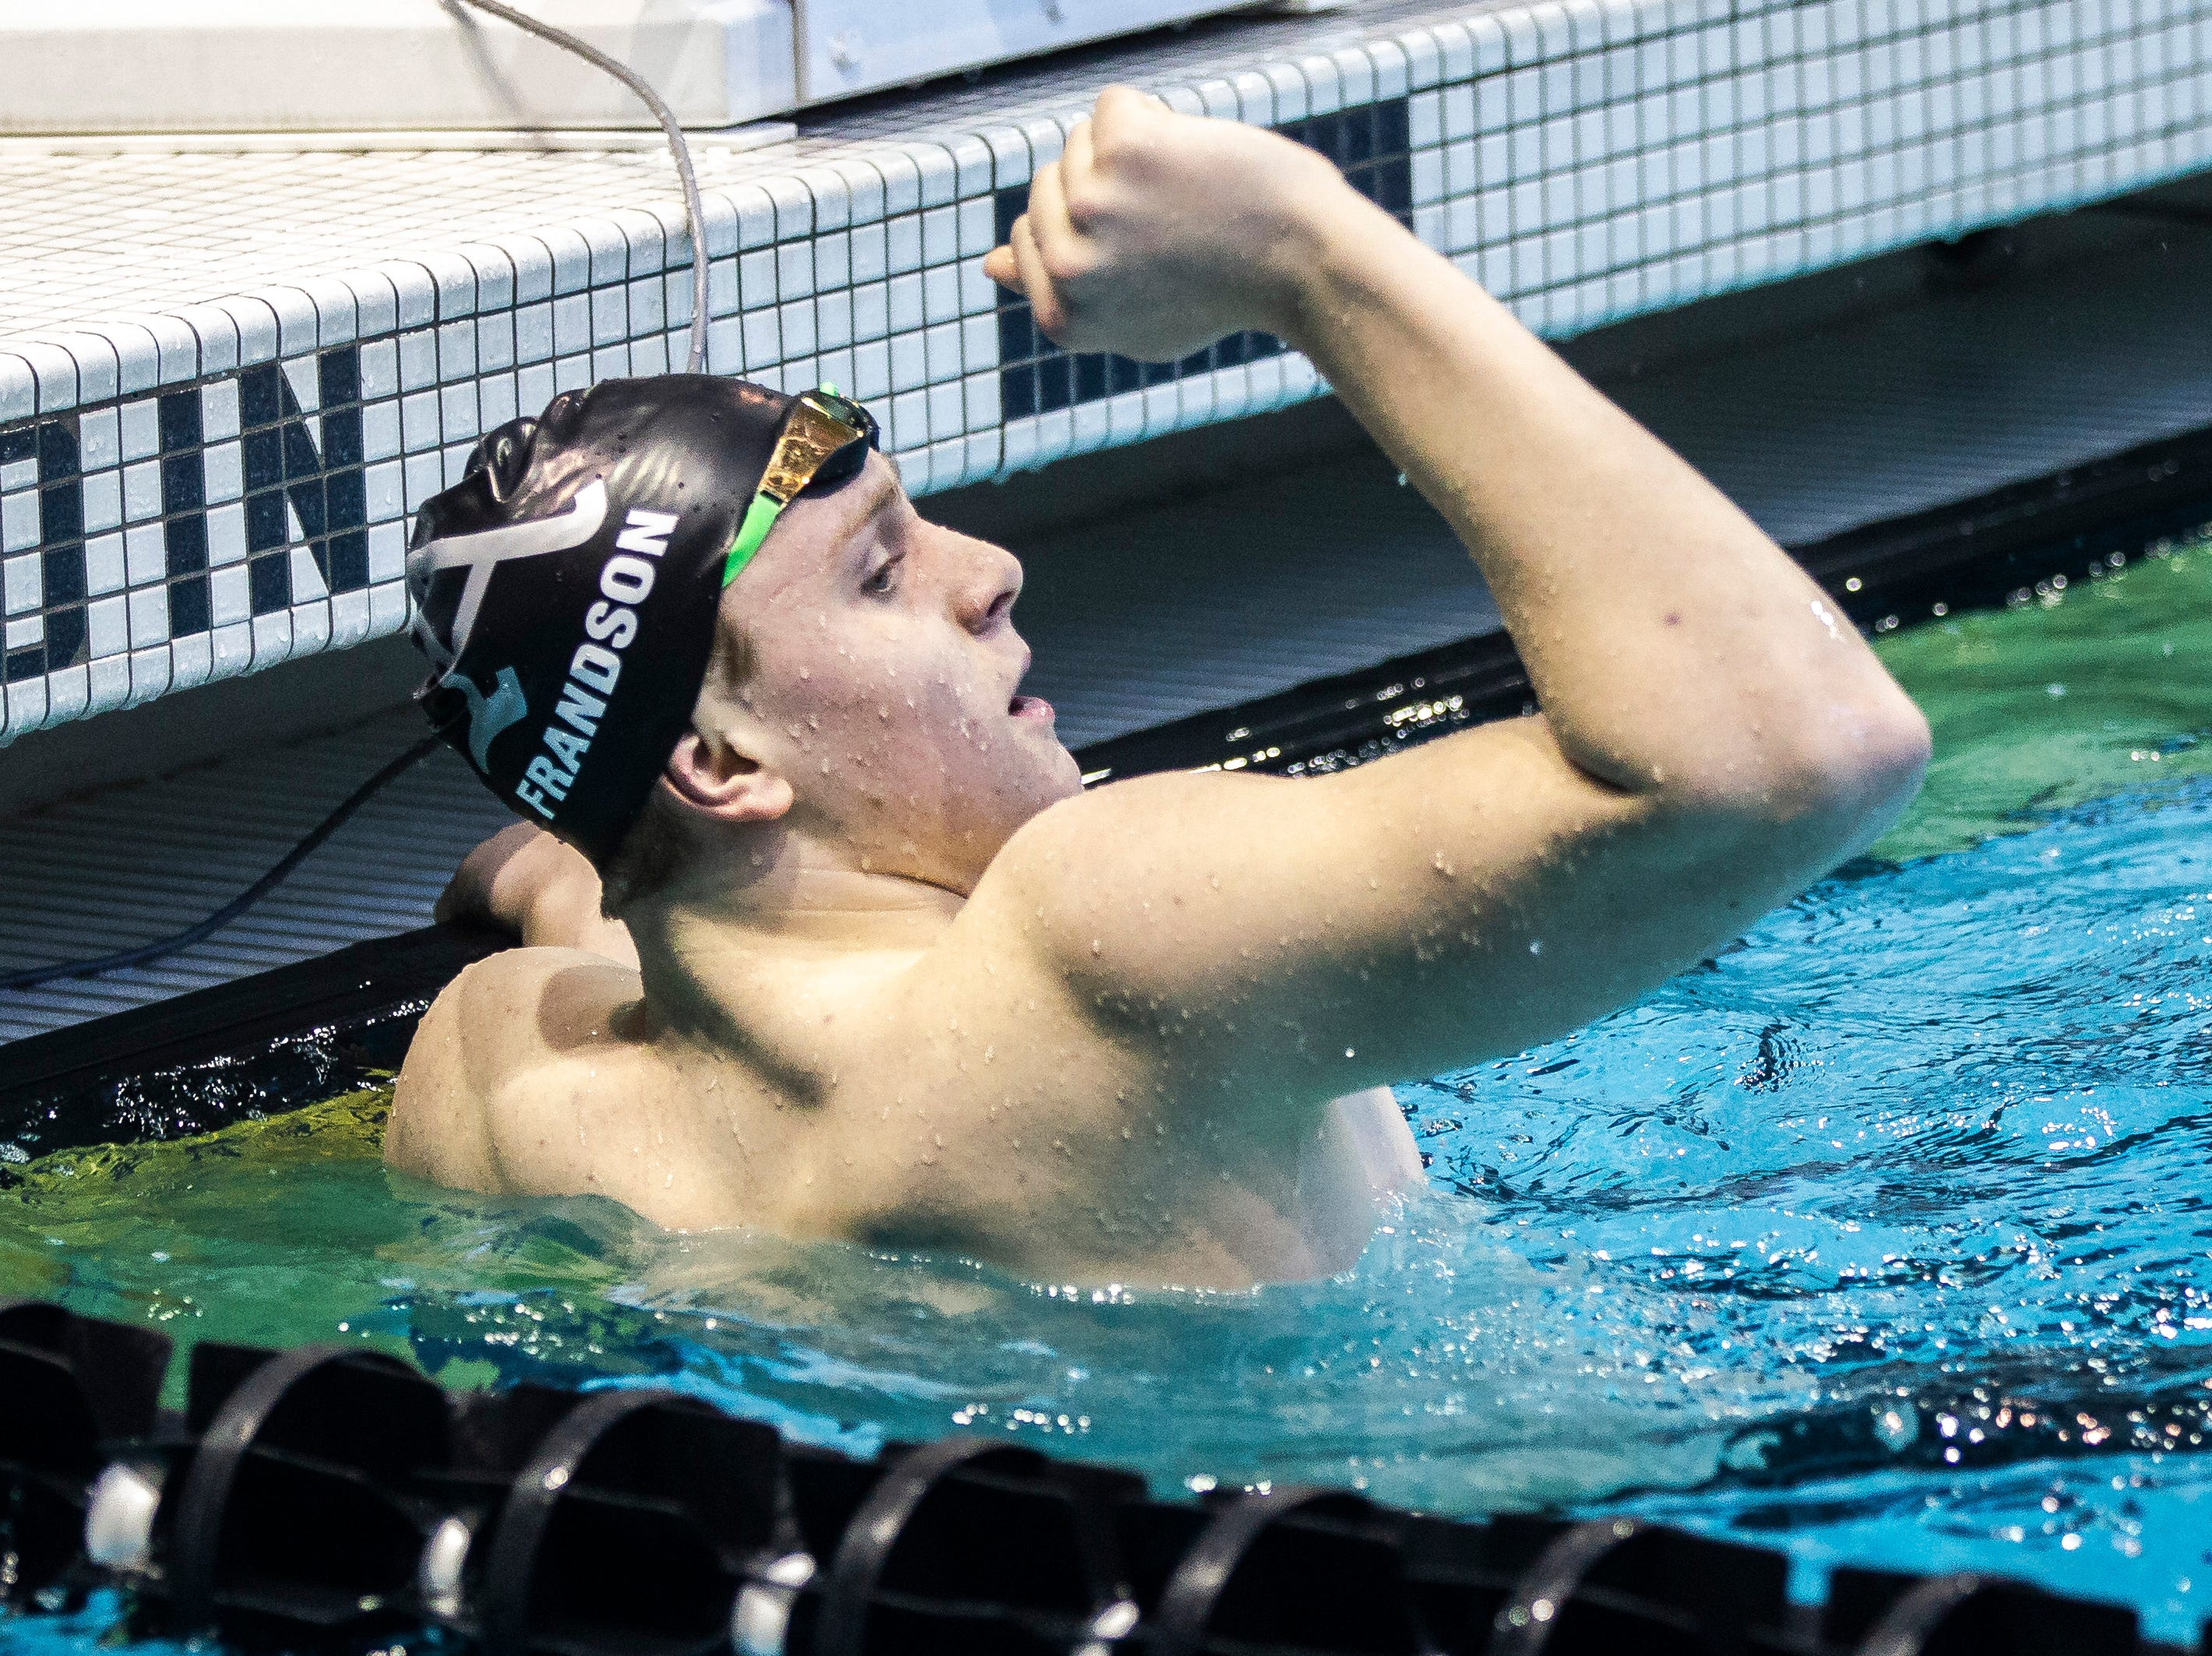 Ankeny sophomore Trent Frandson celebrates after winning the third heat of the 200 yard freestyle during the Iowa boys' state swimming regional championship meet on Saturday, Feb. 9, 2019 at Campus Recreation and Wellness Center on the University of Iowa campus in Iowa City, Iowa. Frandson finished first overall, with a time of 1:37.75.